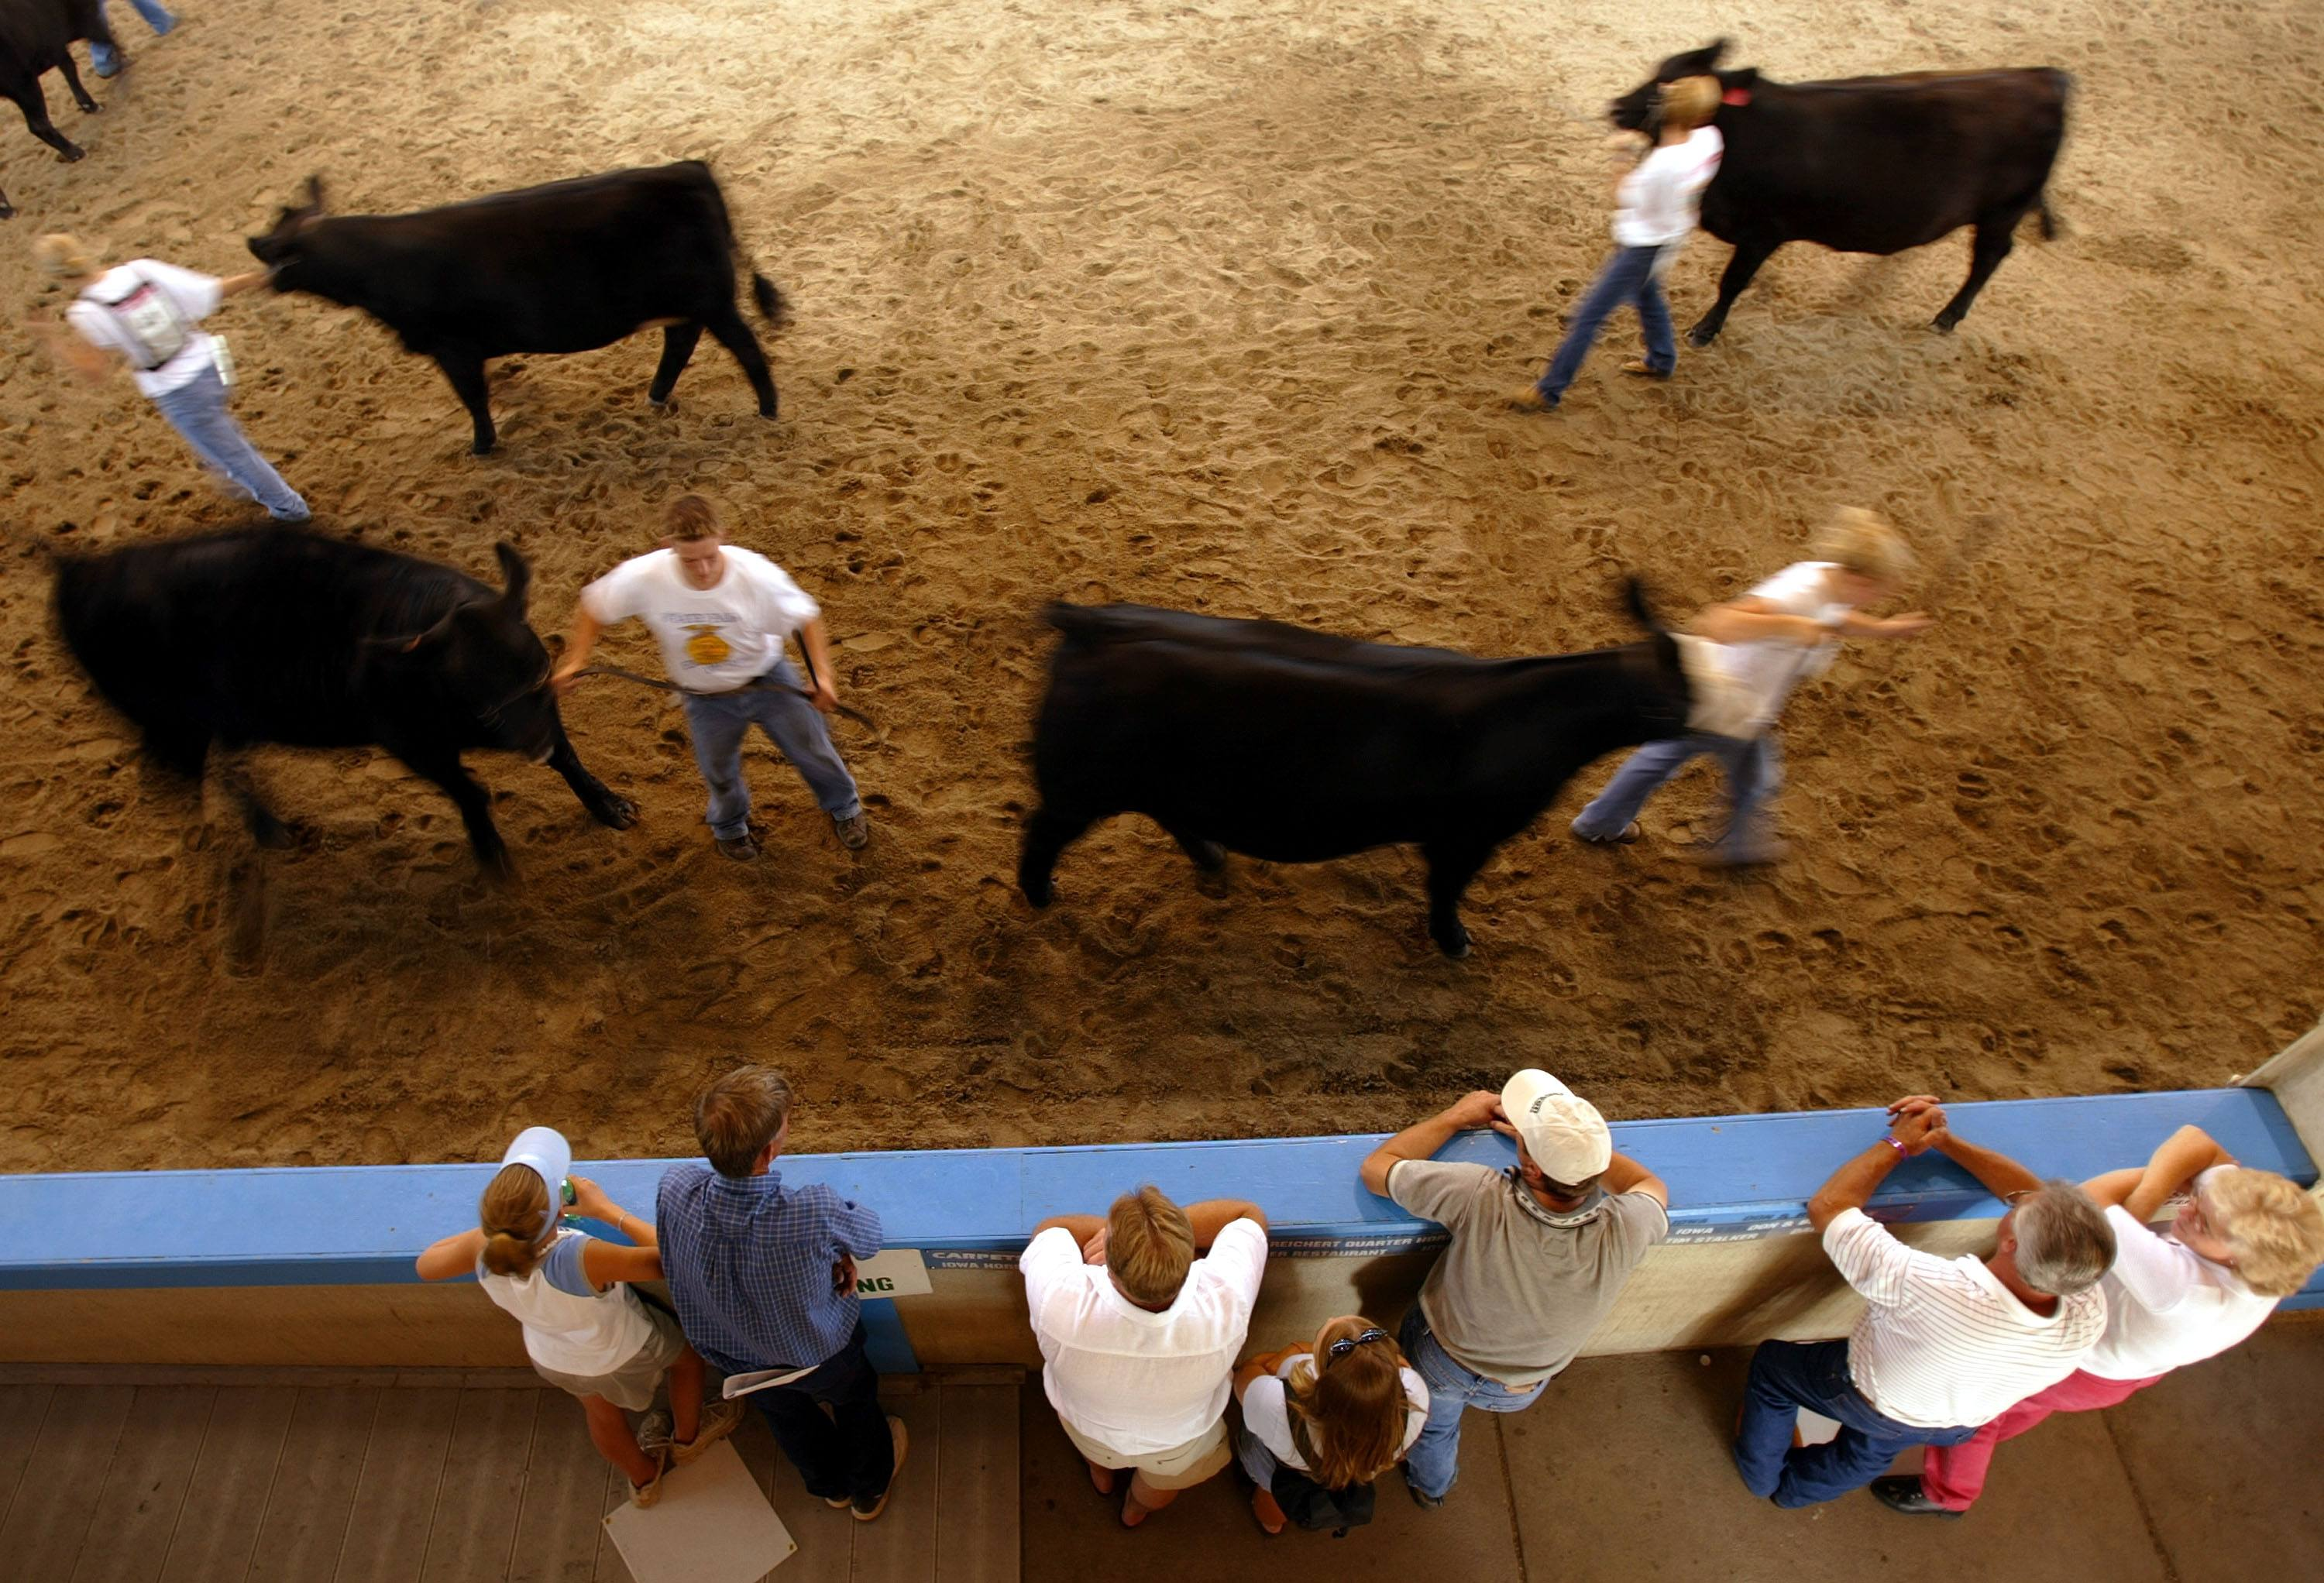 Teens parading cattle during 4-H event at the Iowa State fair